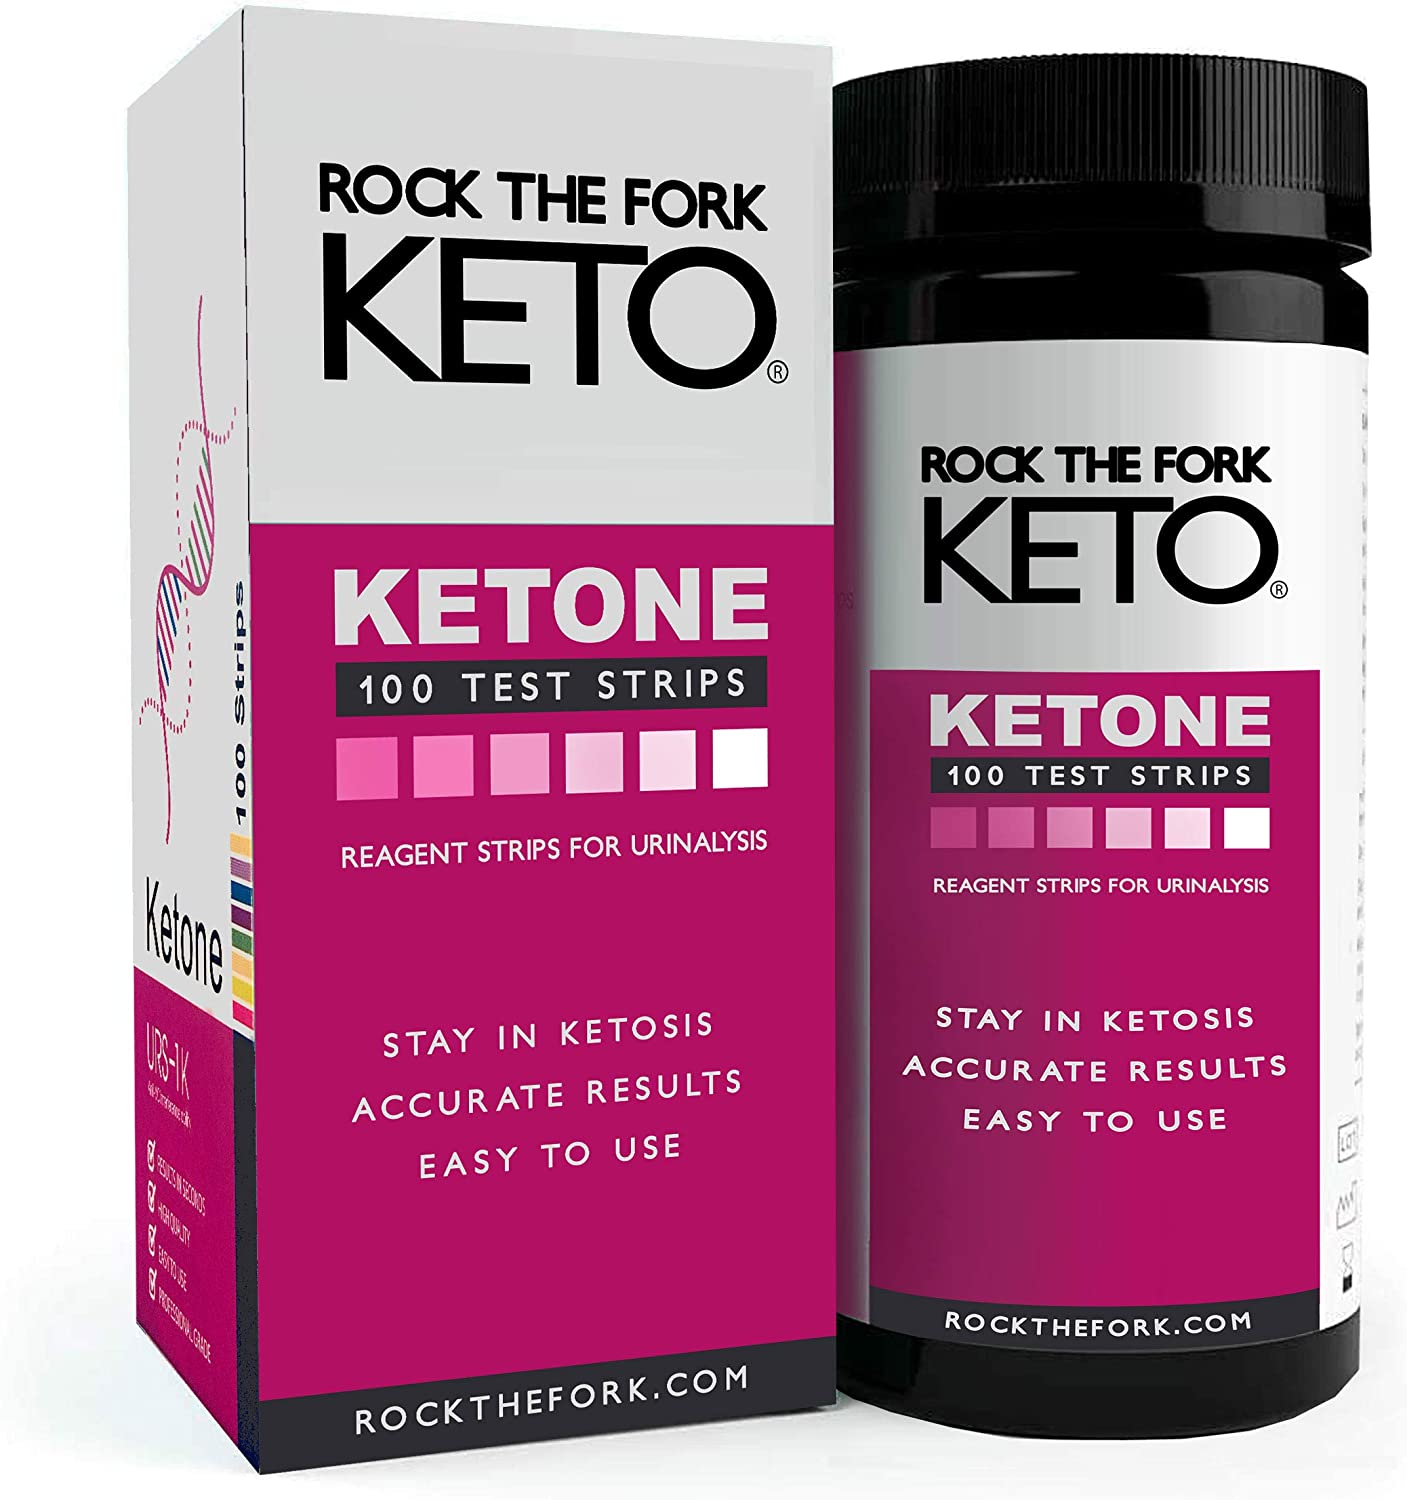 Rock the Fork Keto – Ketone Test Strips –Ketosis Testing for Low-Carb Ketogenic, Adkins, or PSMF Diet. Easy-to-Use Urinalysis Kit. Includes: 100 Sticks